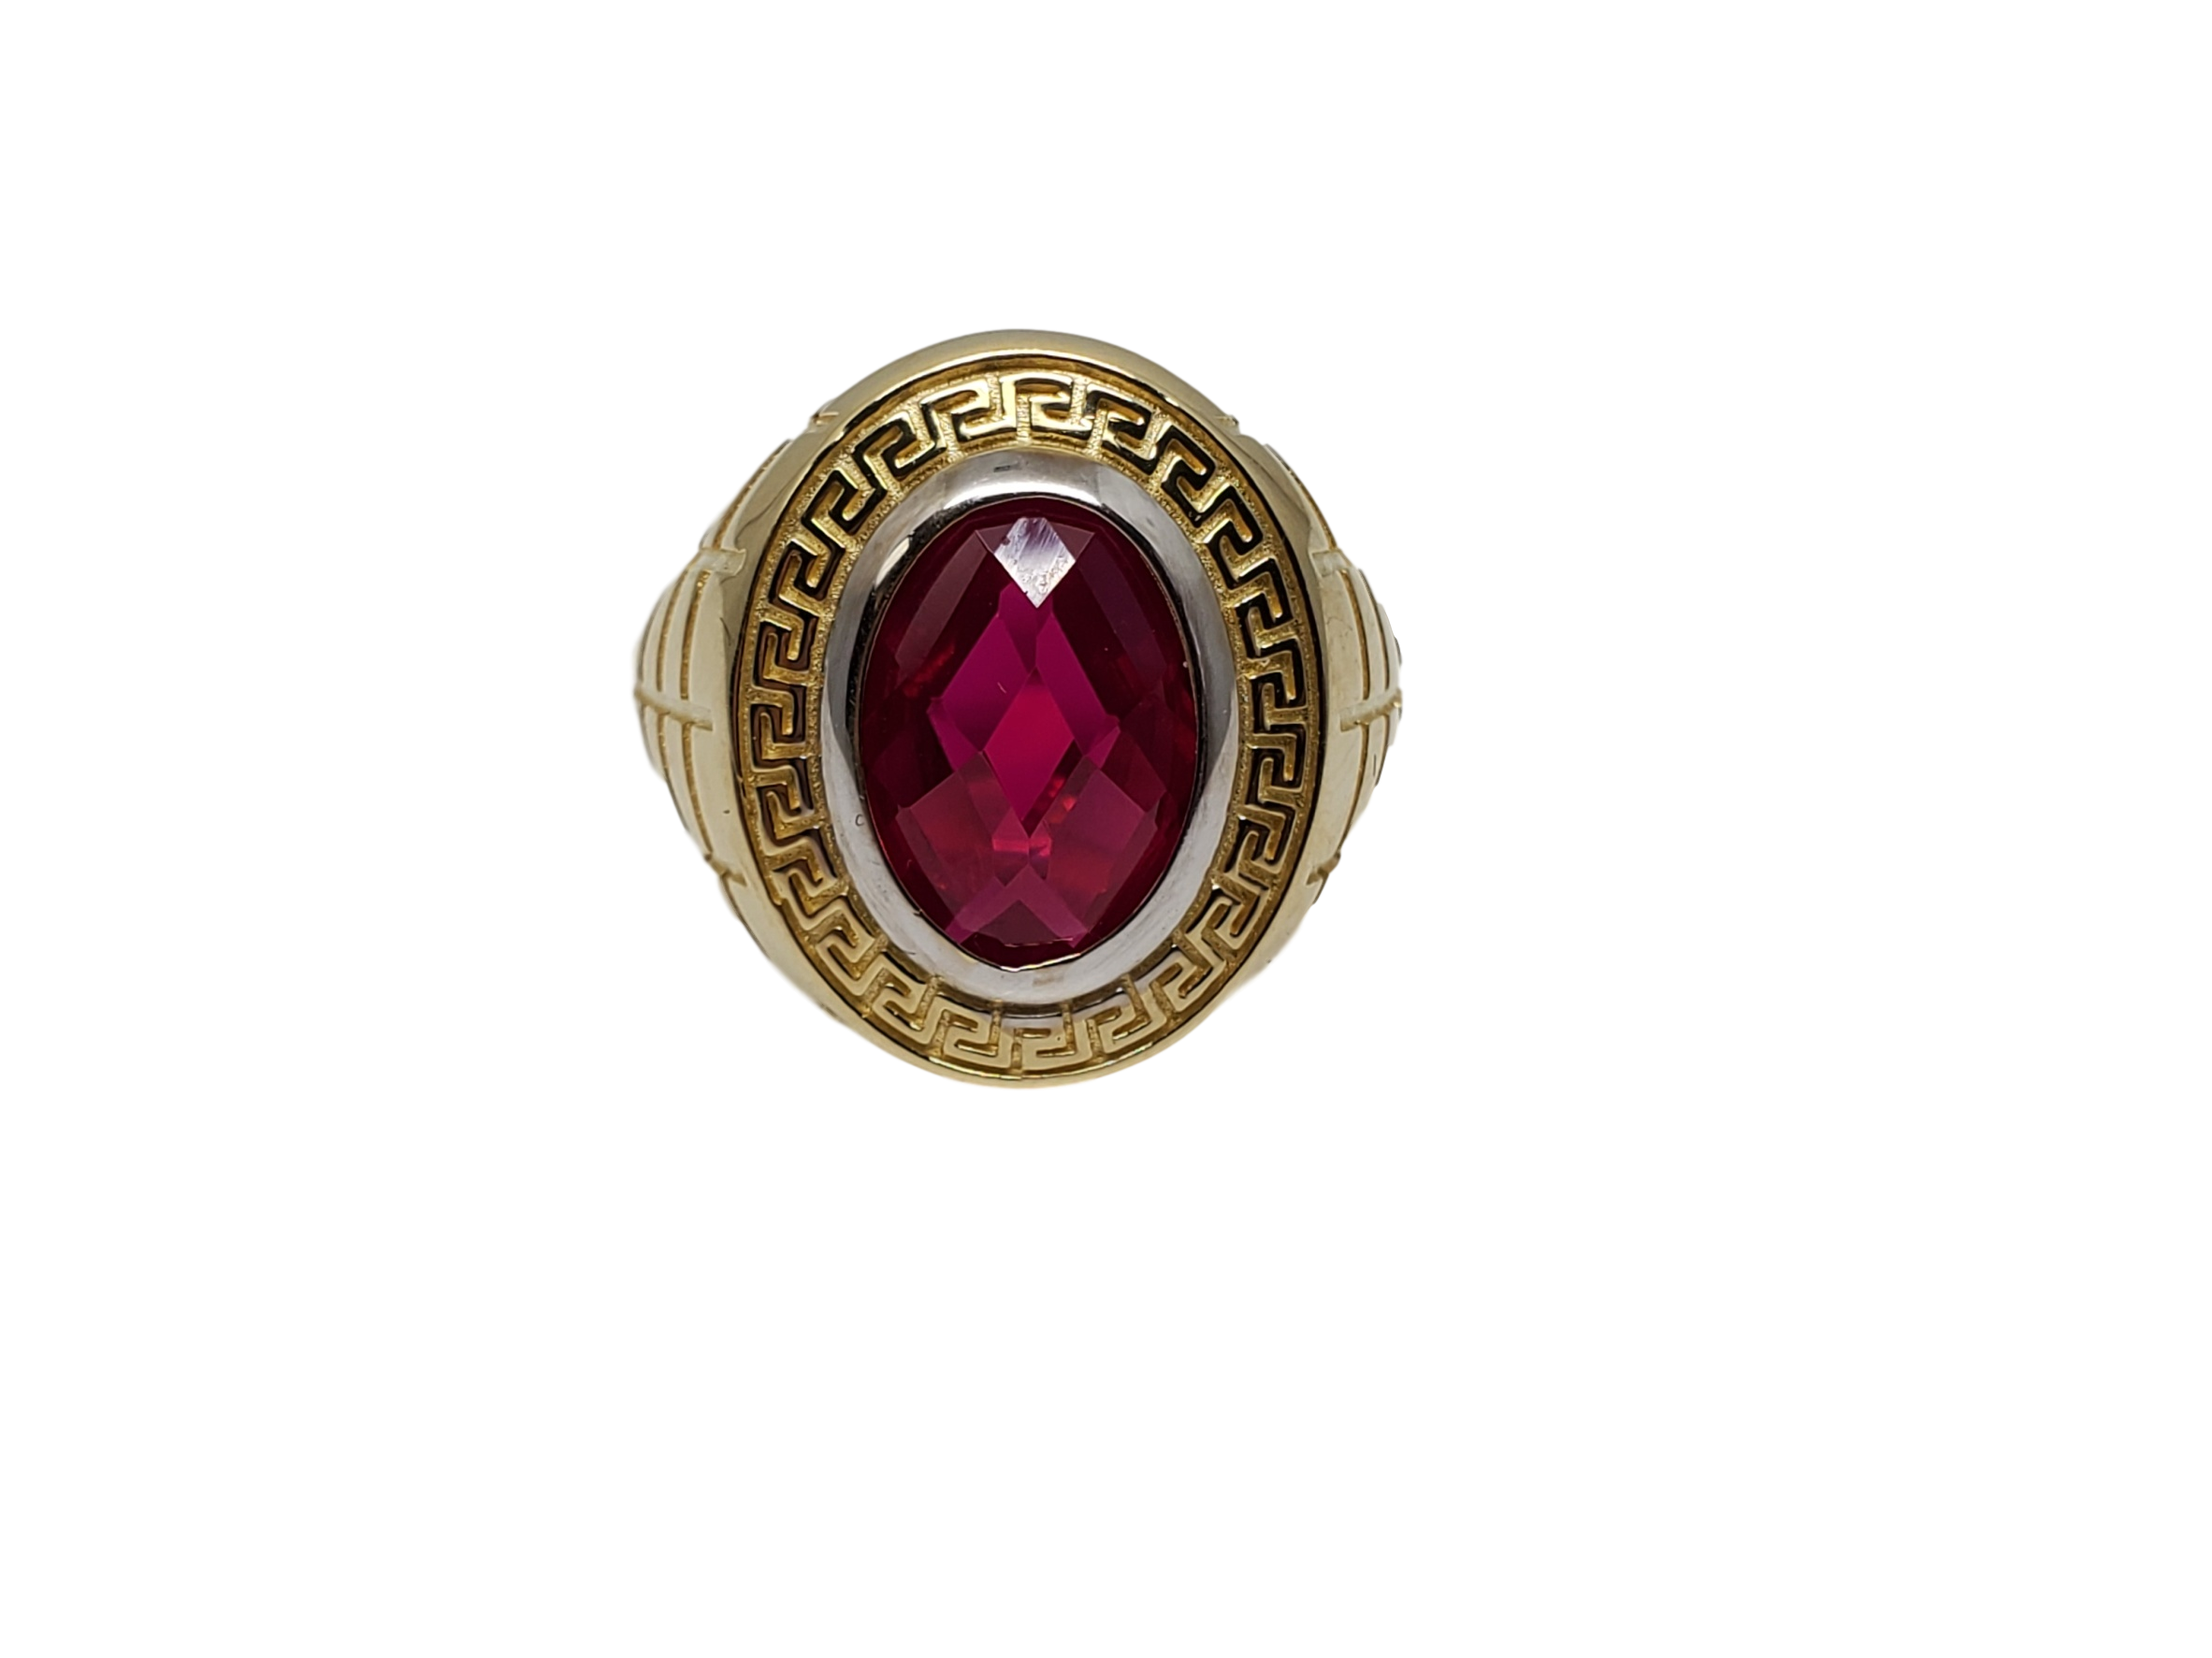 Bague ruby rouge avec Versace en or 10k model 2020